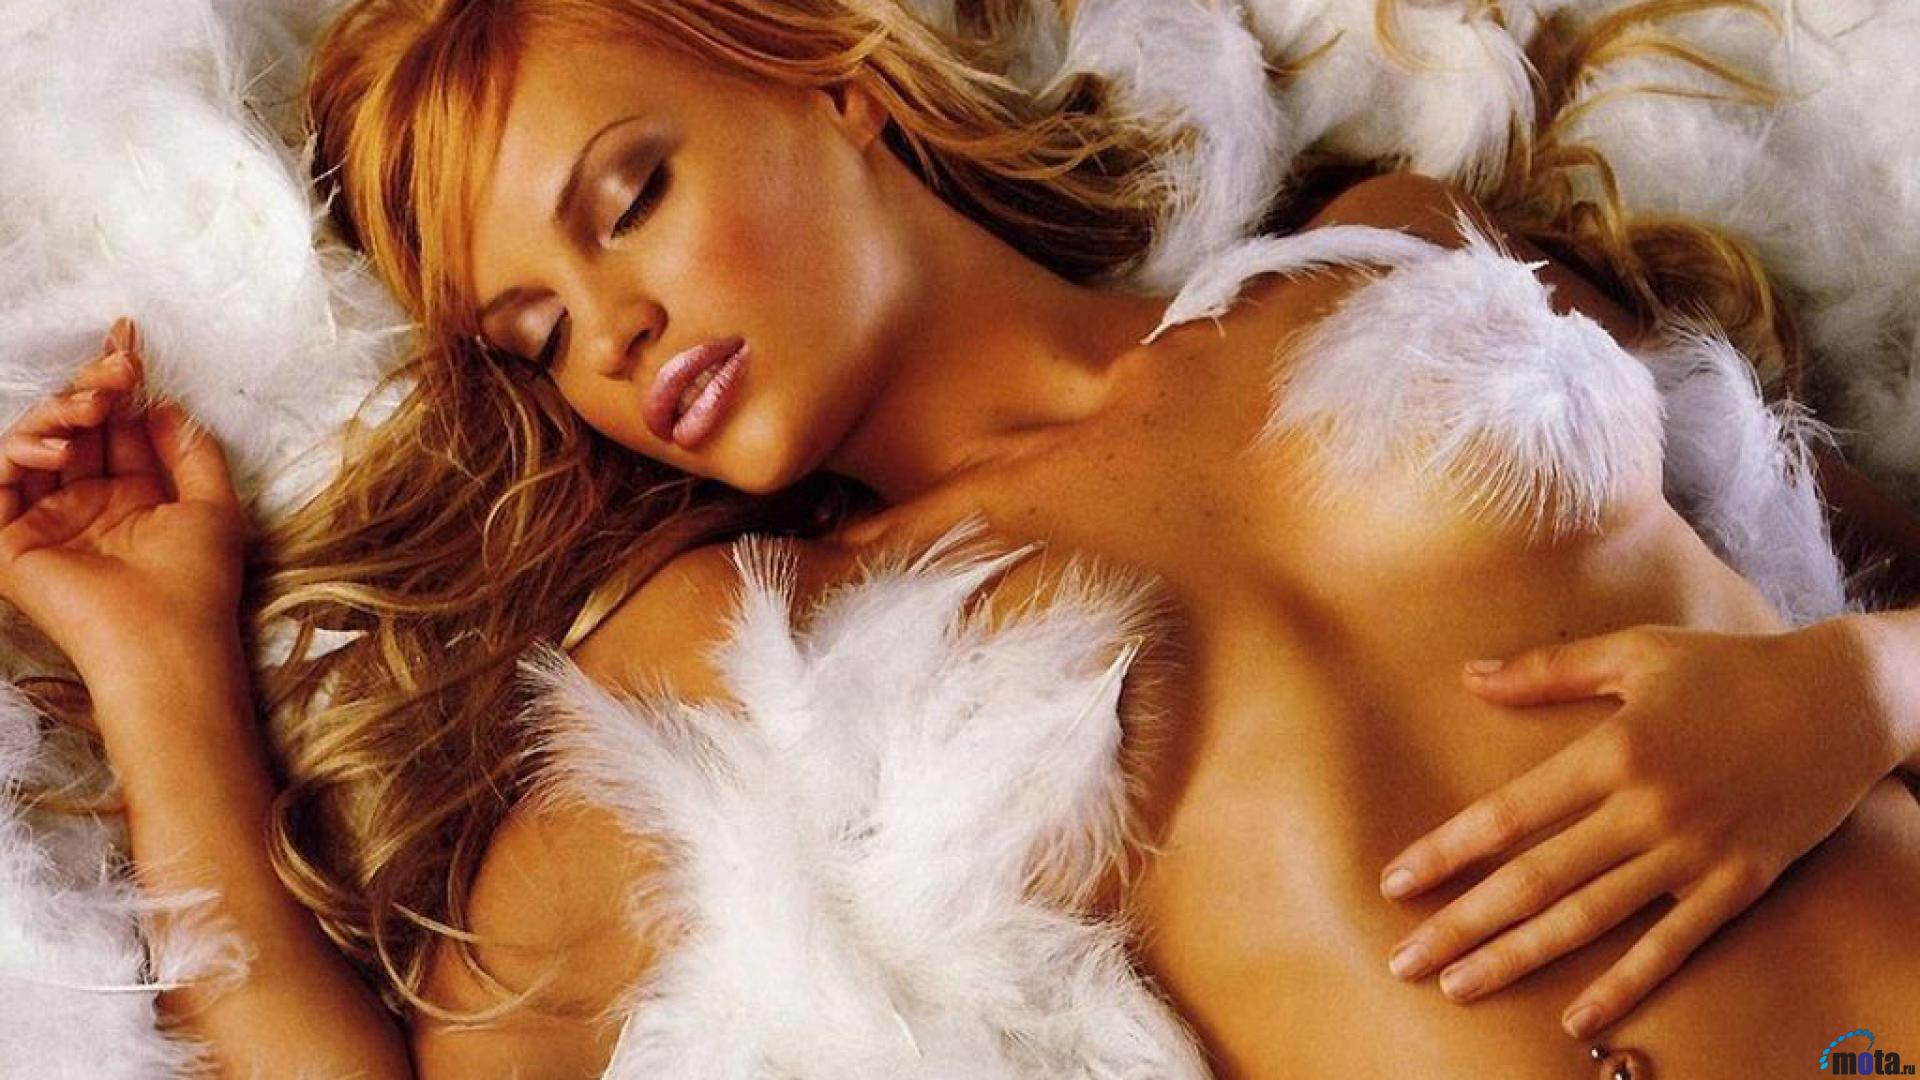 playboy pictures images photos